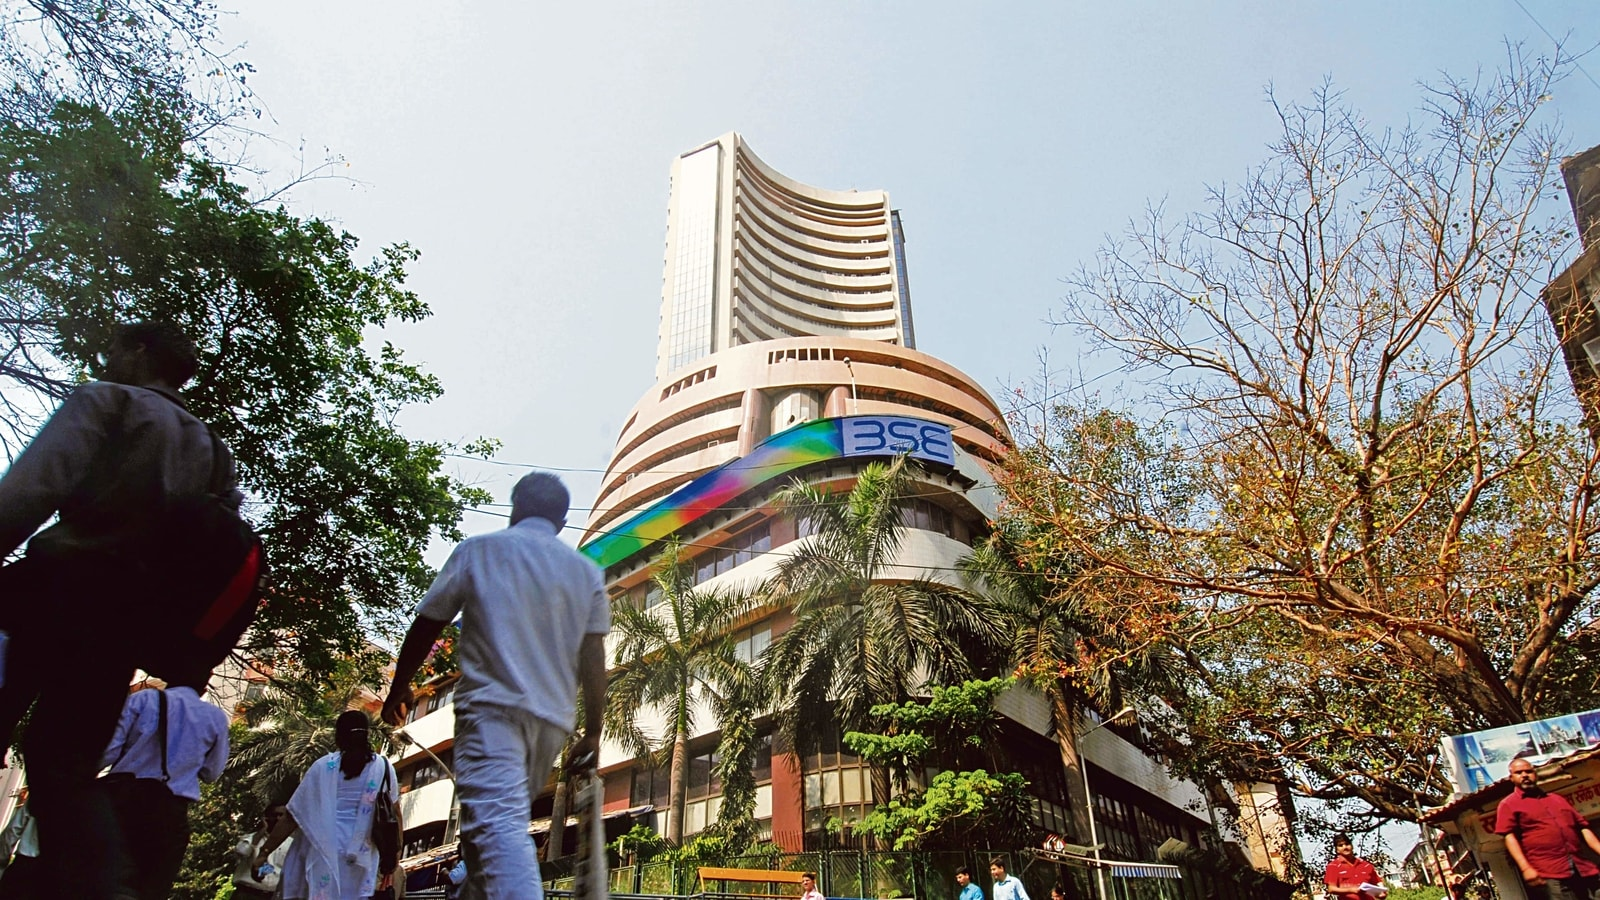 Sensex tanks 1,631 points to 49,407 in afternoon session; Nifty below 14,600 - Hindustan Times